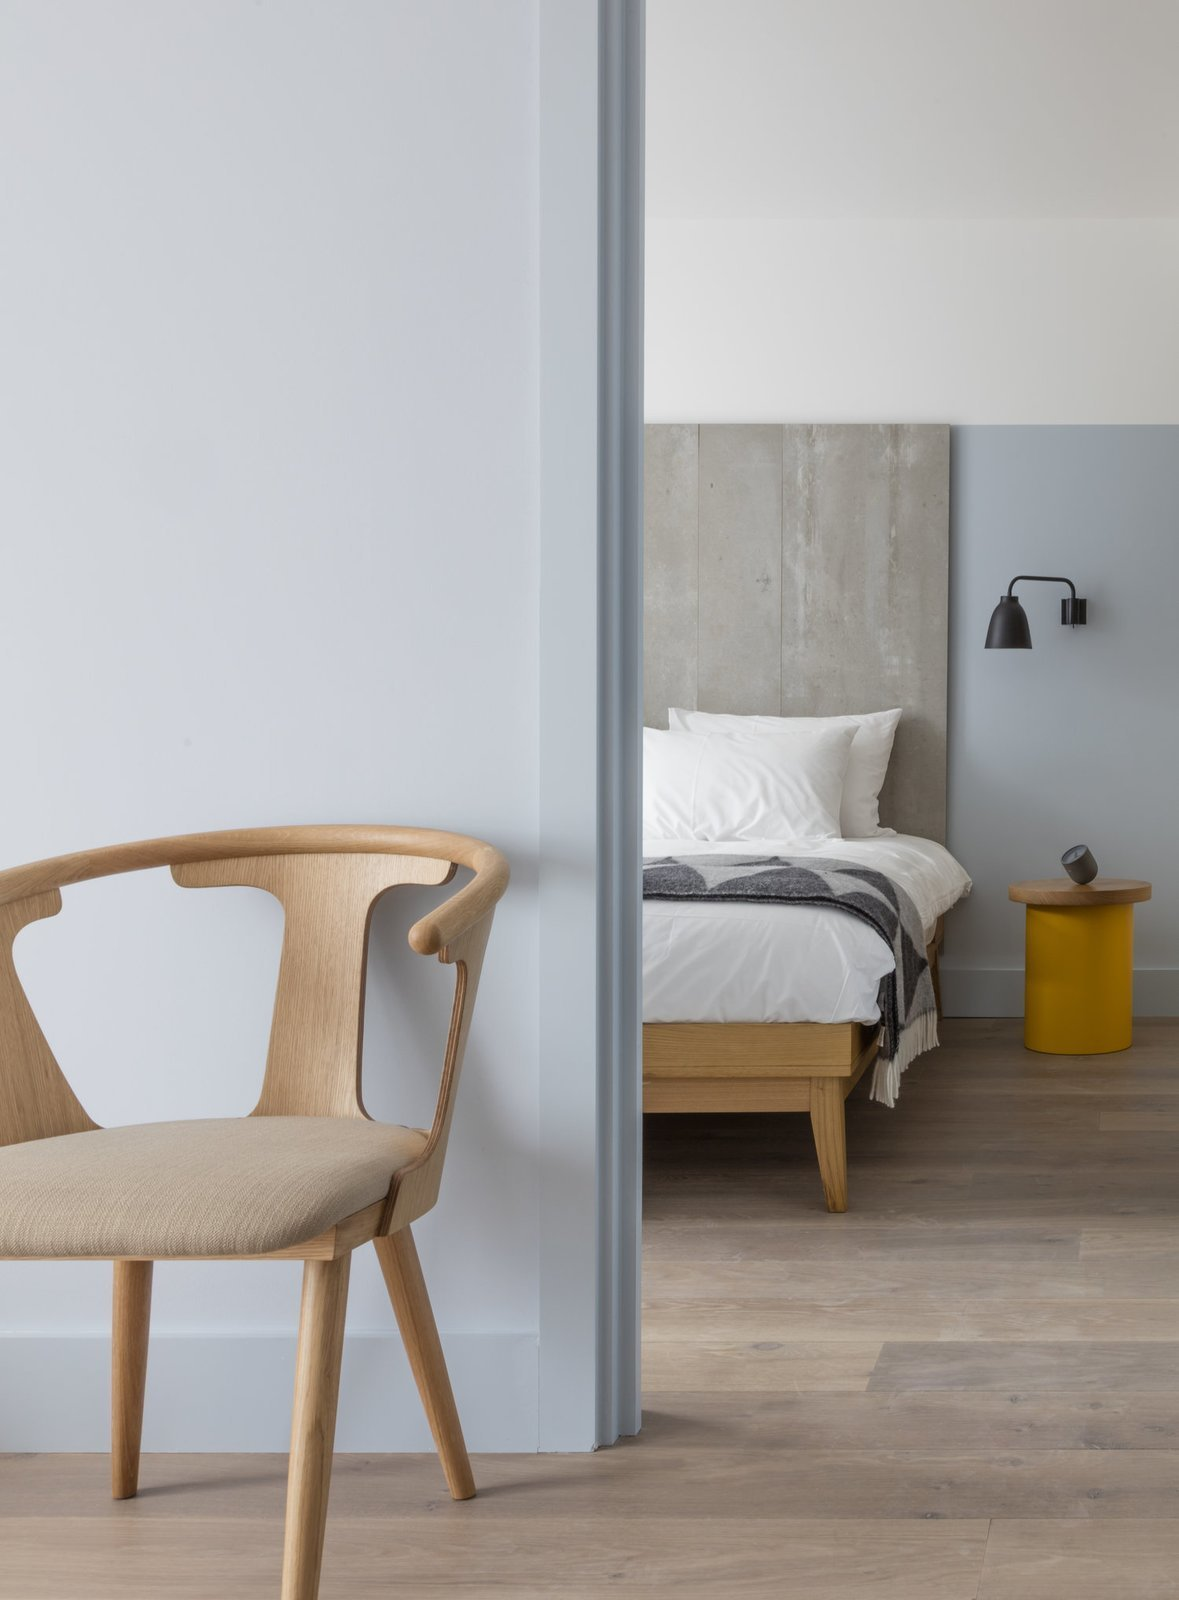 Designed by Grzywinski+Pons, Leman Locke London is a service apartment style hotel that has furniture items like retractable desks and flip-up tables to make the most of space. Tagged: Bedroom, Chair, Bed, Night Stands, Wall Lighting, and Light Hardwood Floor.  Photo 8 of 9 in 8 Stylish London Apartments